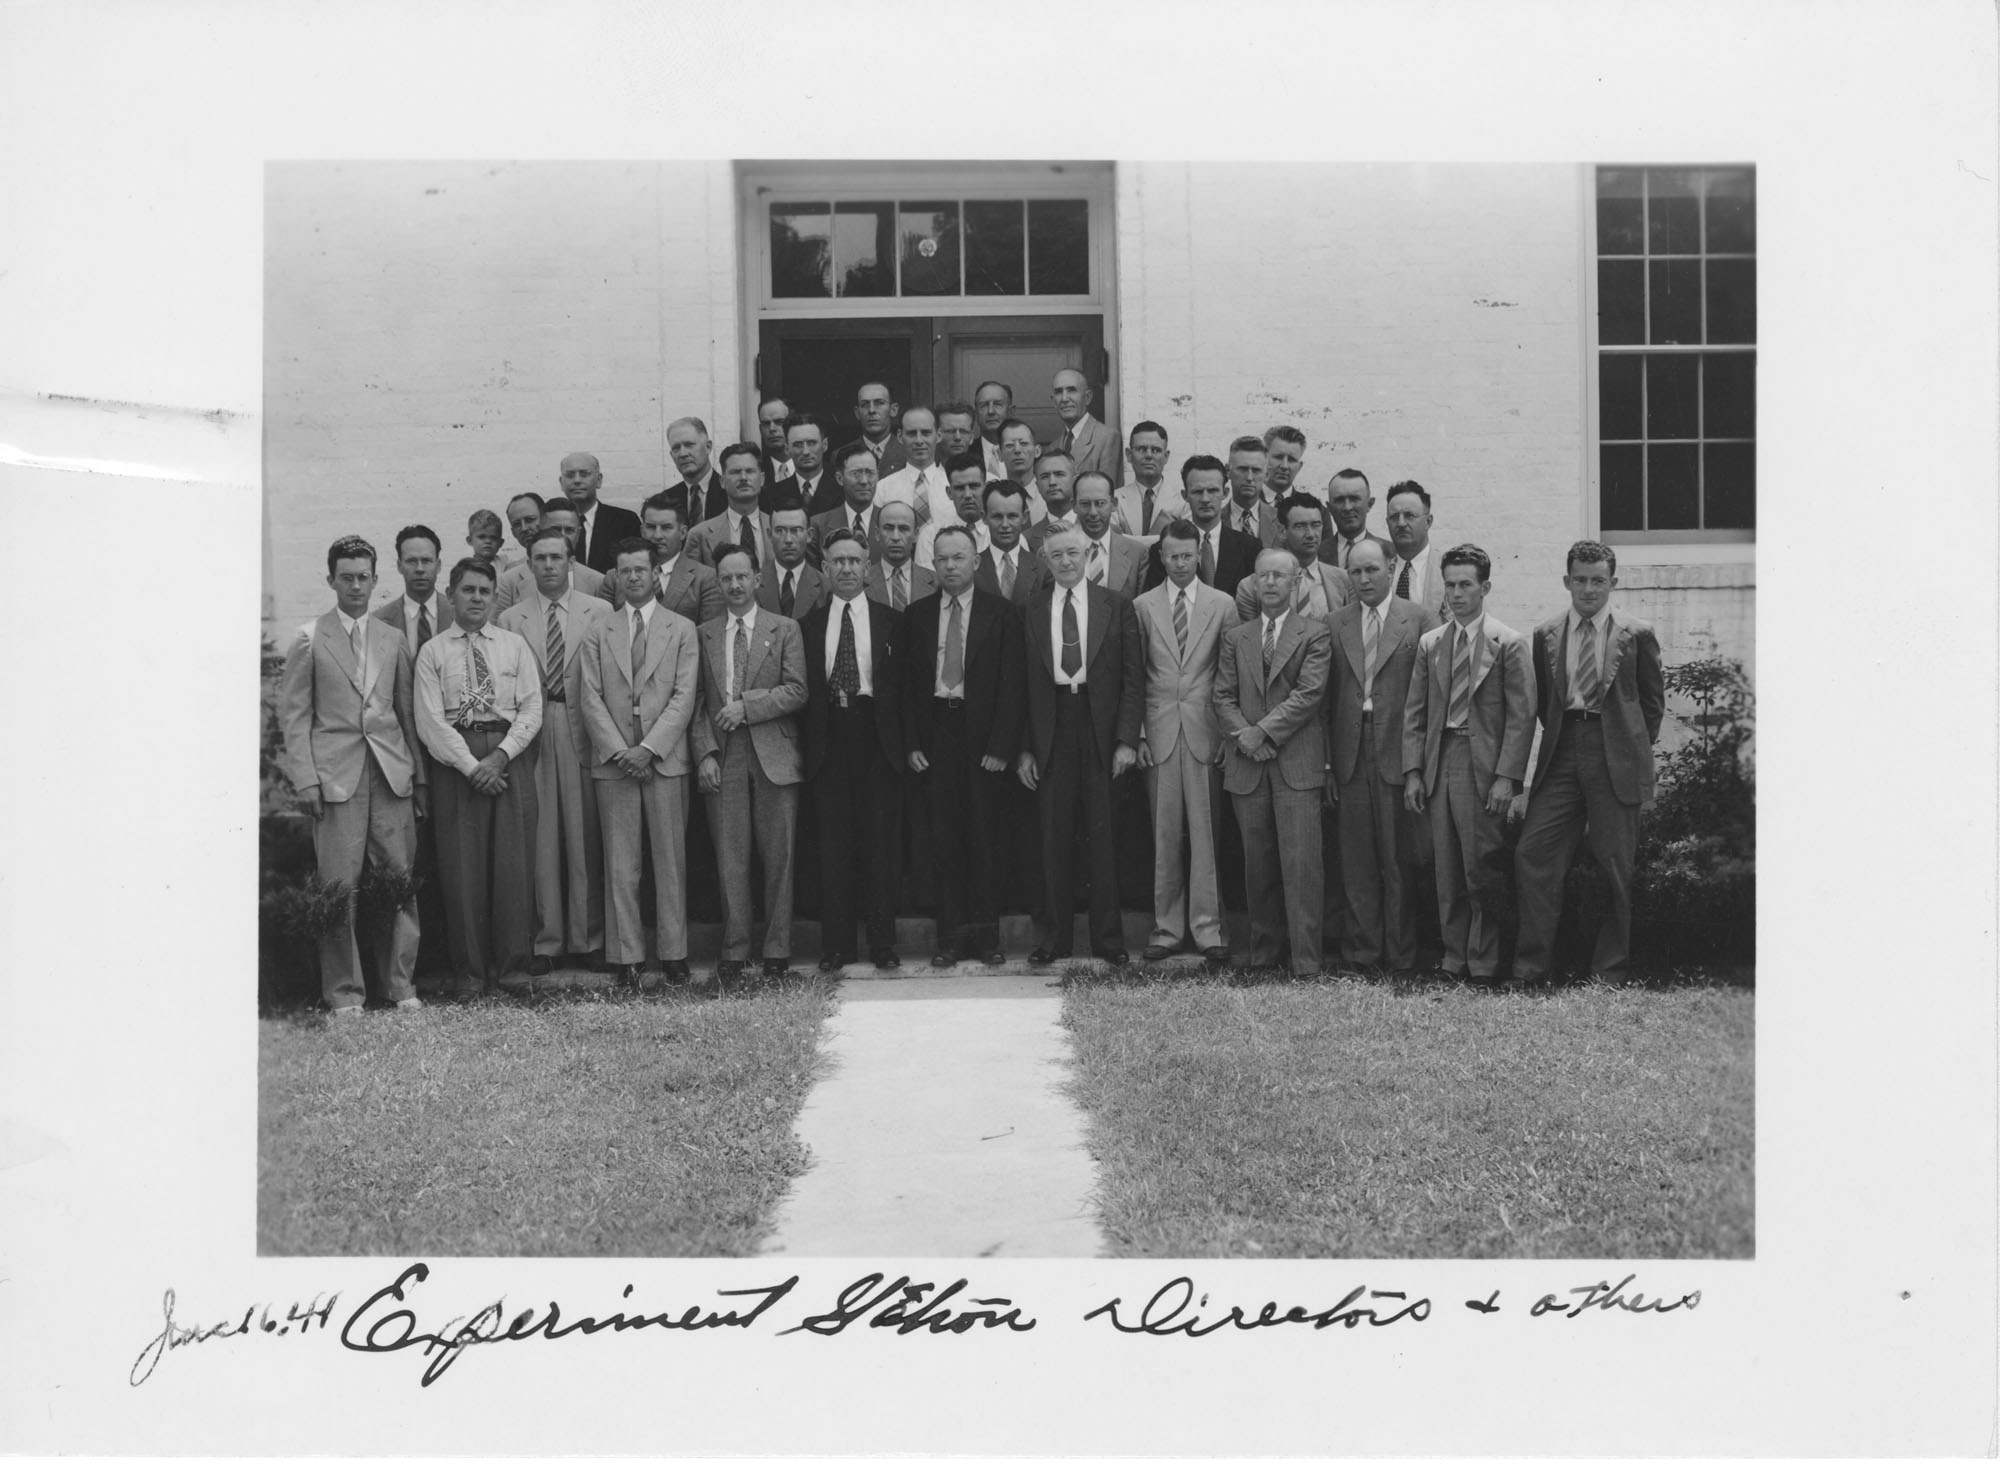 Experiment Station Directors and Others